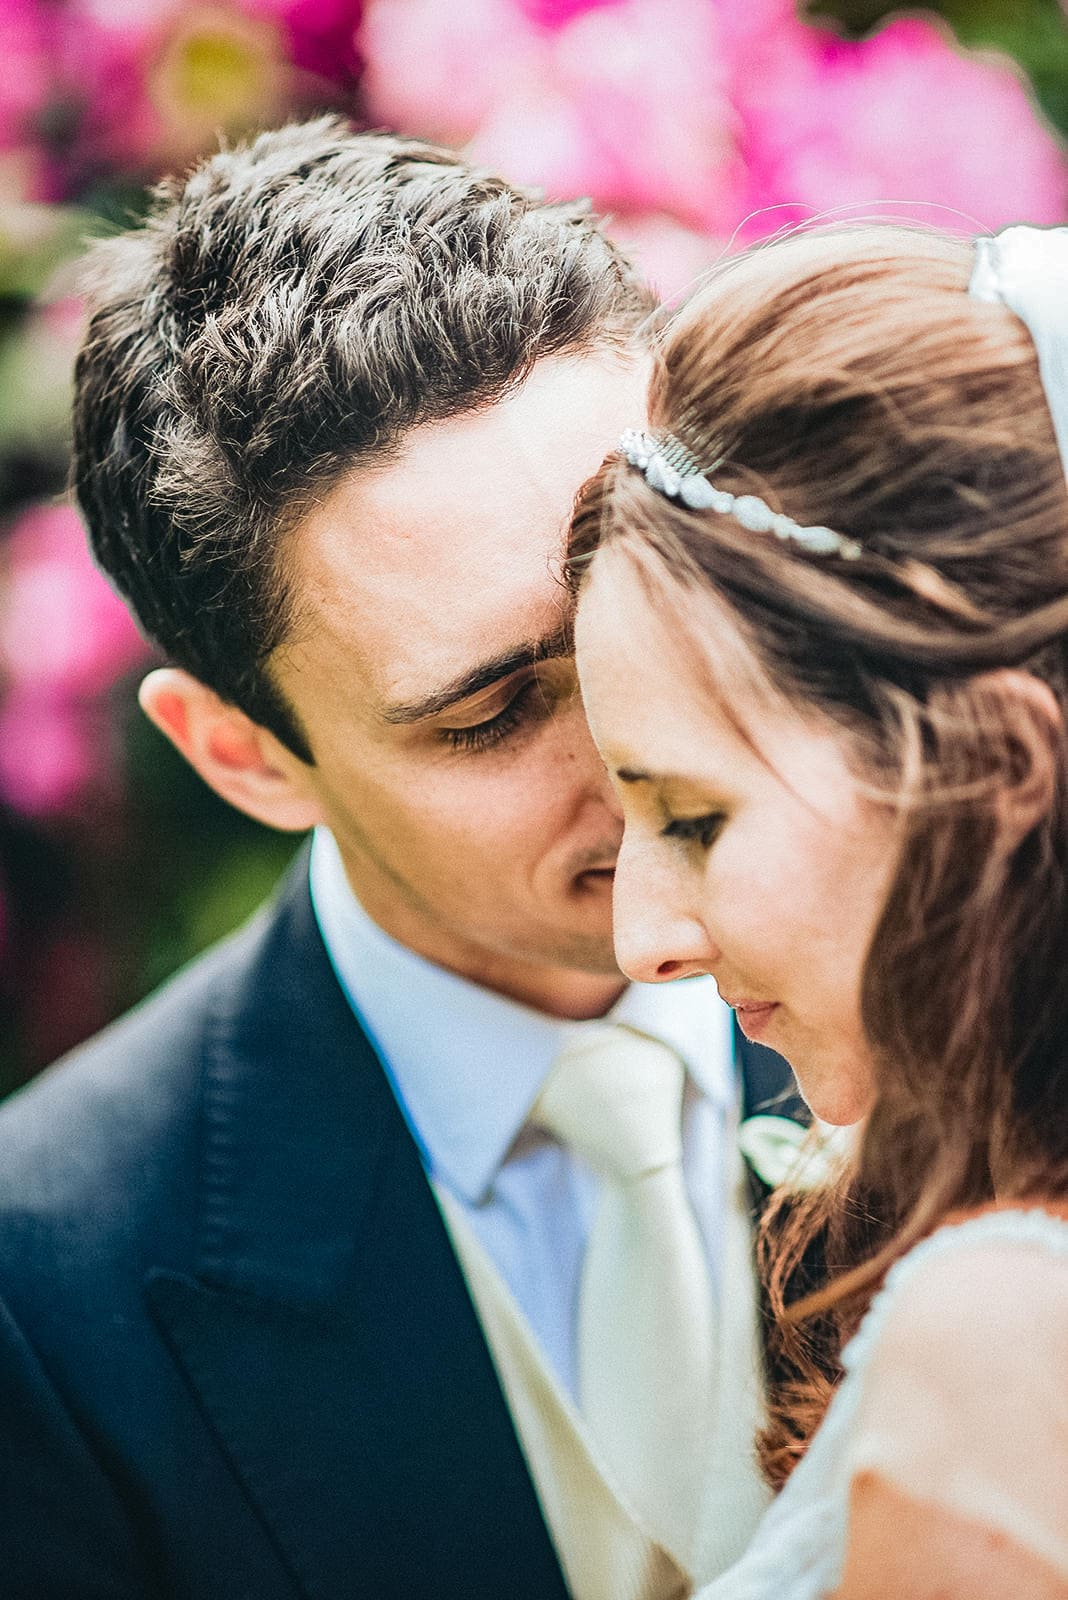 Groom kisses the bride's cheek with pink flowers at the hurlingham Club behind them